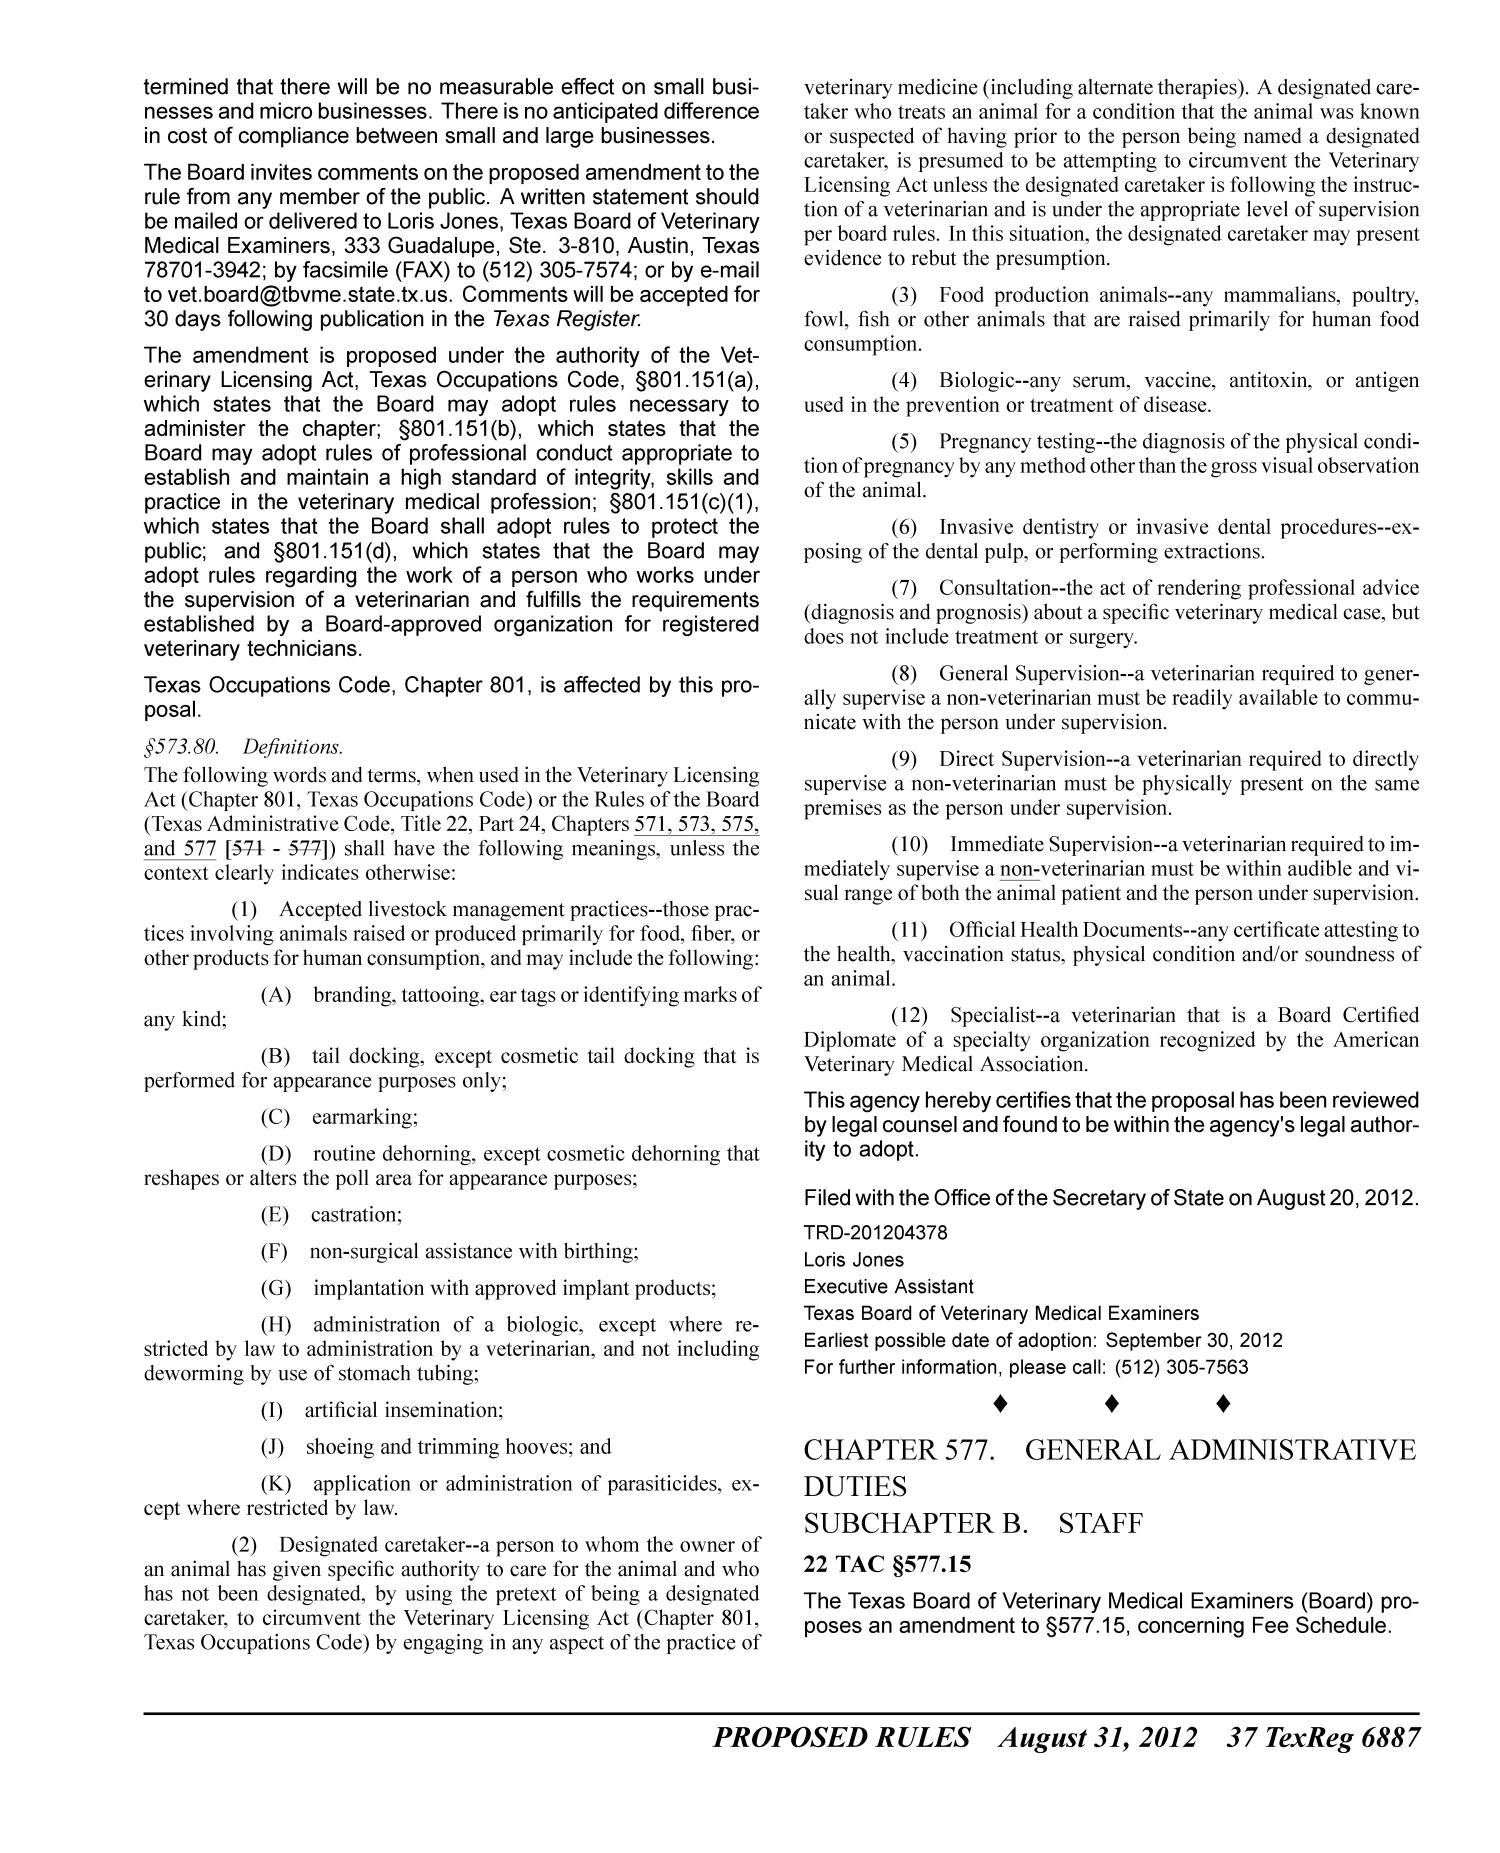 Texas Register, Volume 37, Number 35, Pages 6819-7008, August 31, 2012                                                                                                      6887